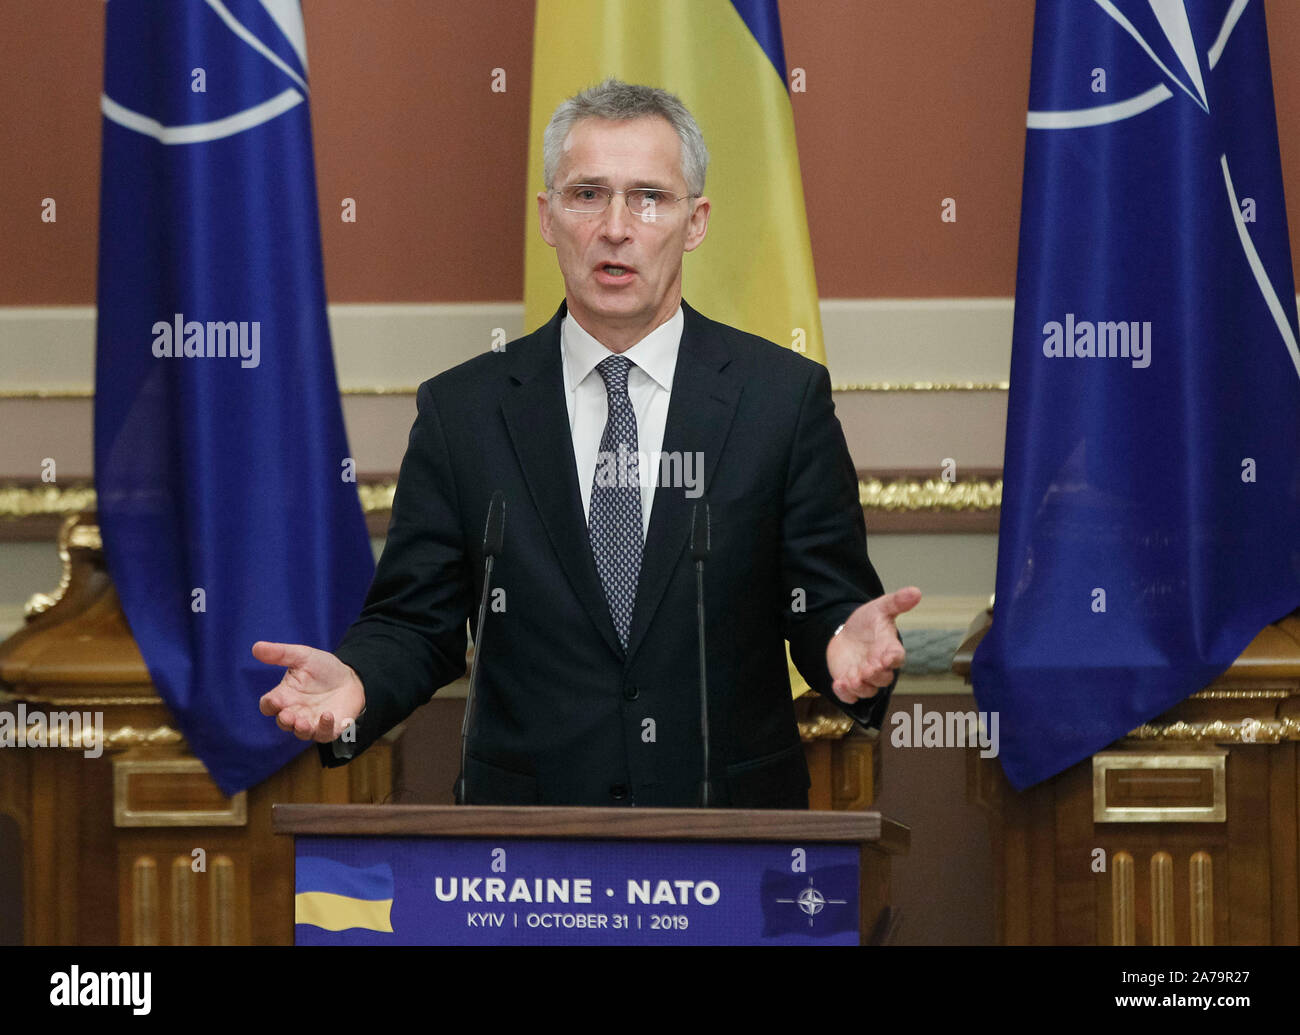 NATO Secretary General, Jens Stoltenberg speaks to the media after the NATO-Ukraine Commission meeting.The North Atlantic Council (NAC) with NATO Secretary General, Jens Stoltenberg visited Ukraine on October 30-31, 2019. Stock Photo